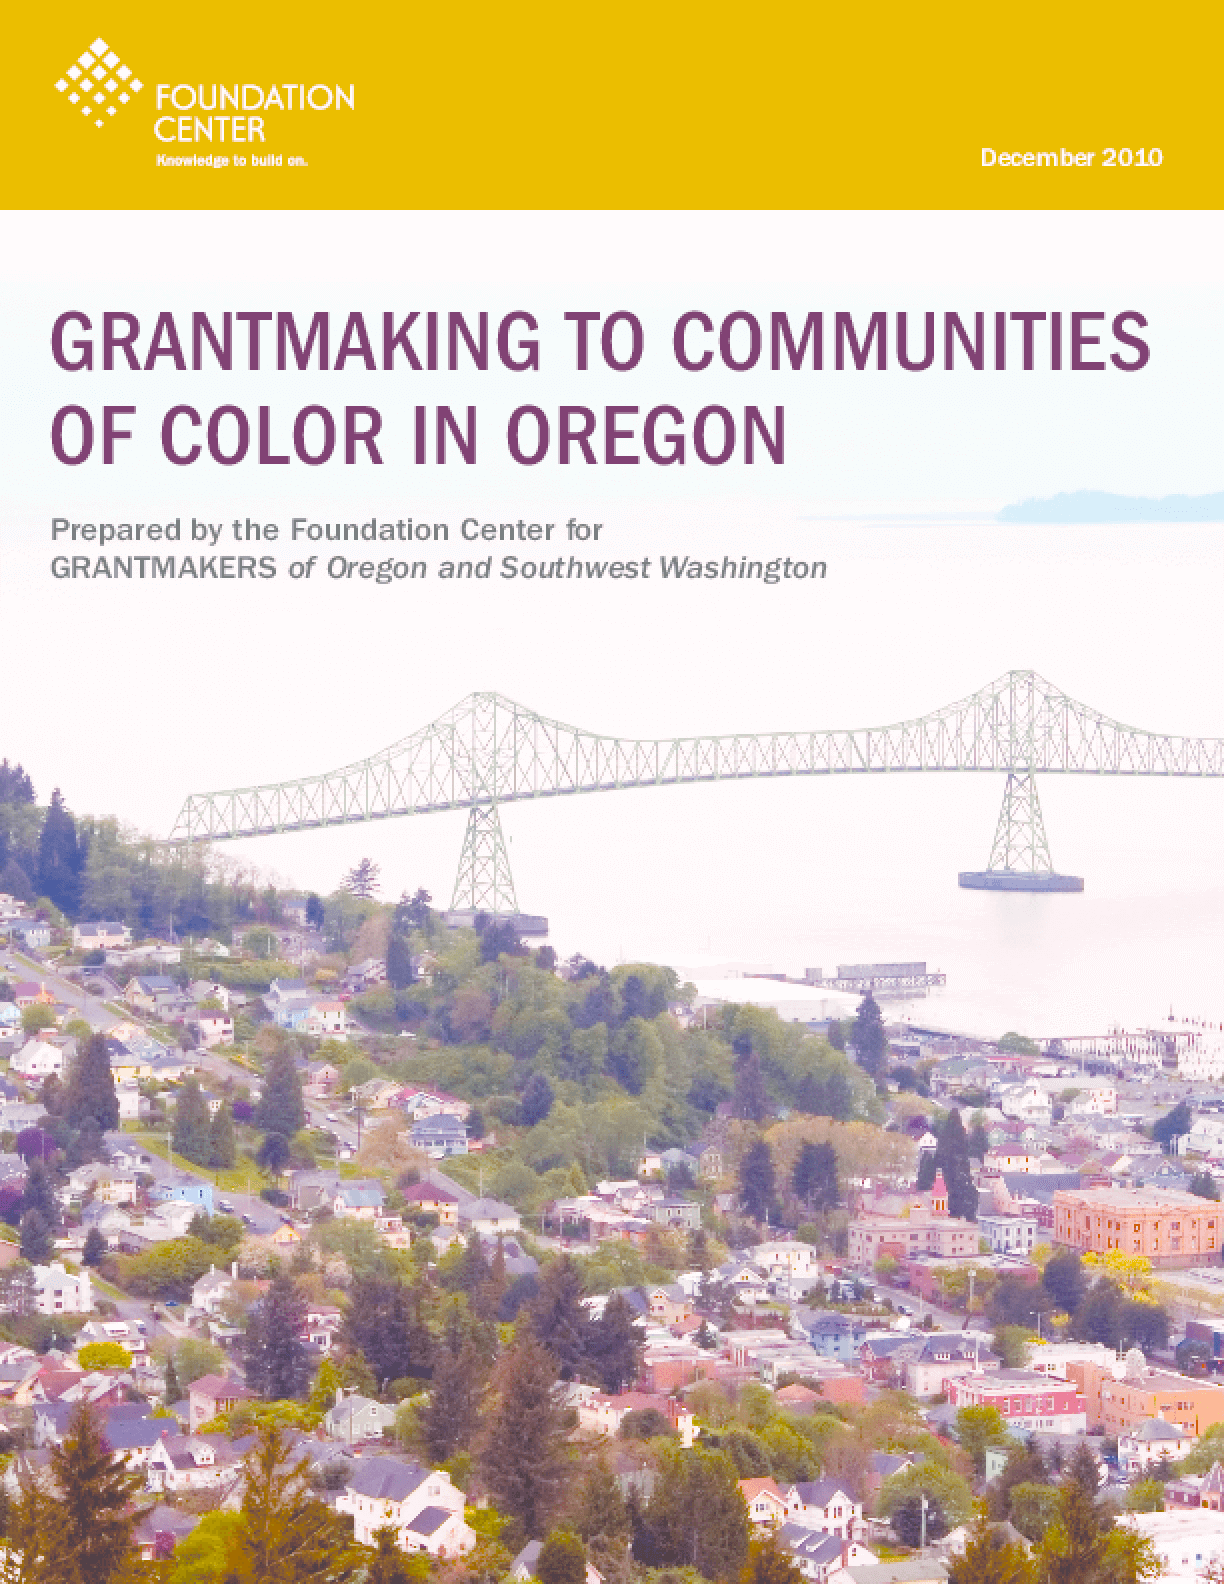 Grantmaking to Communities of Color in Oregon